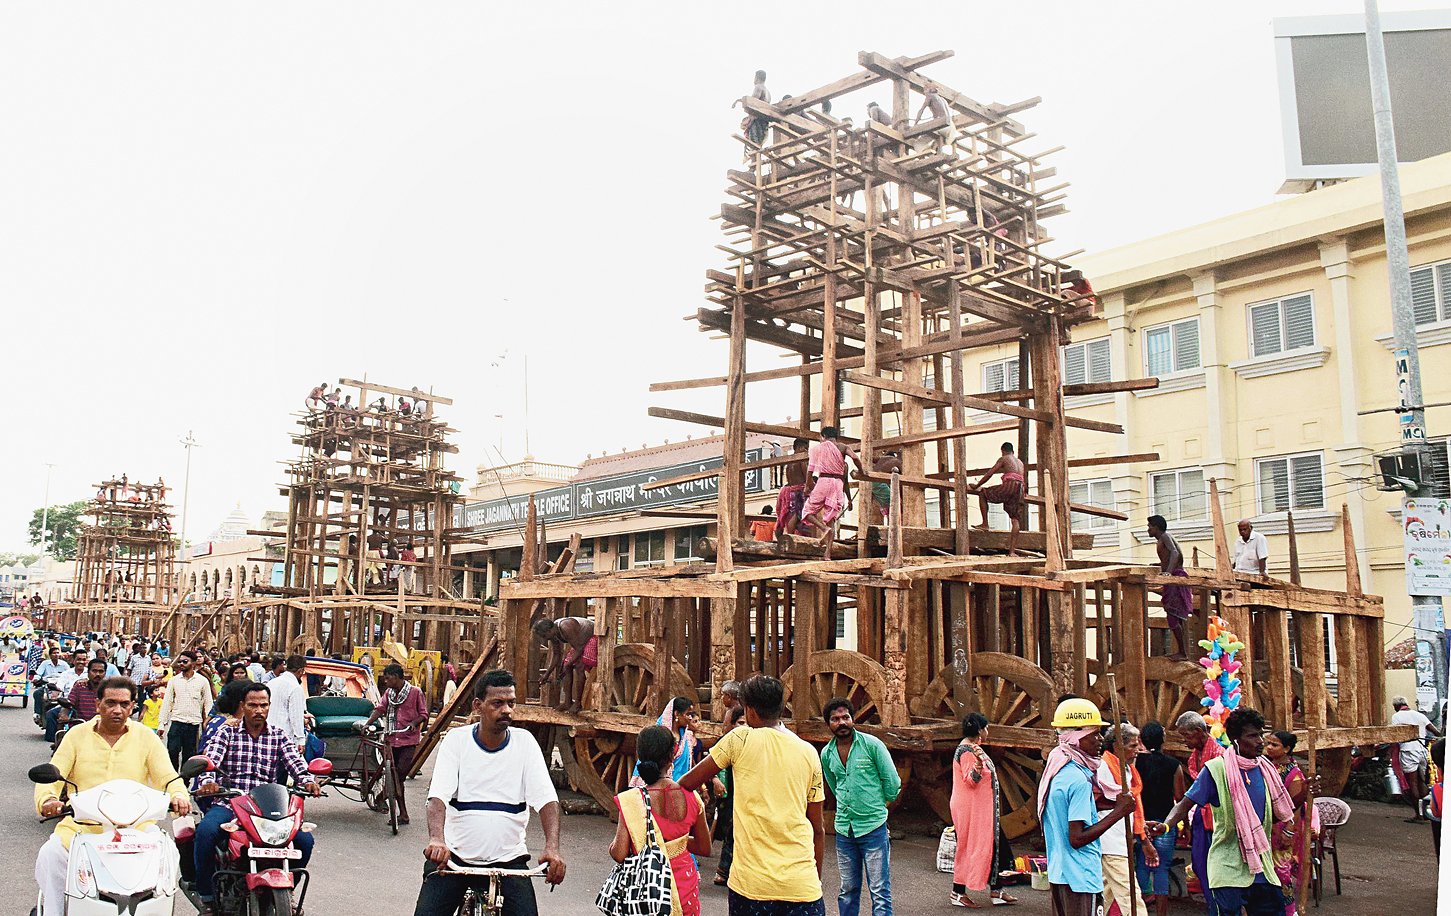 Artisans in Puri construct chariots for the Rath Yatra.